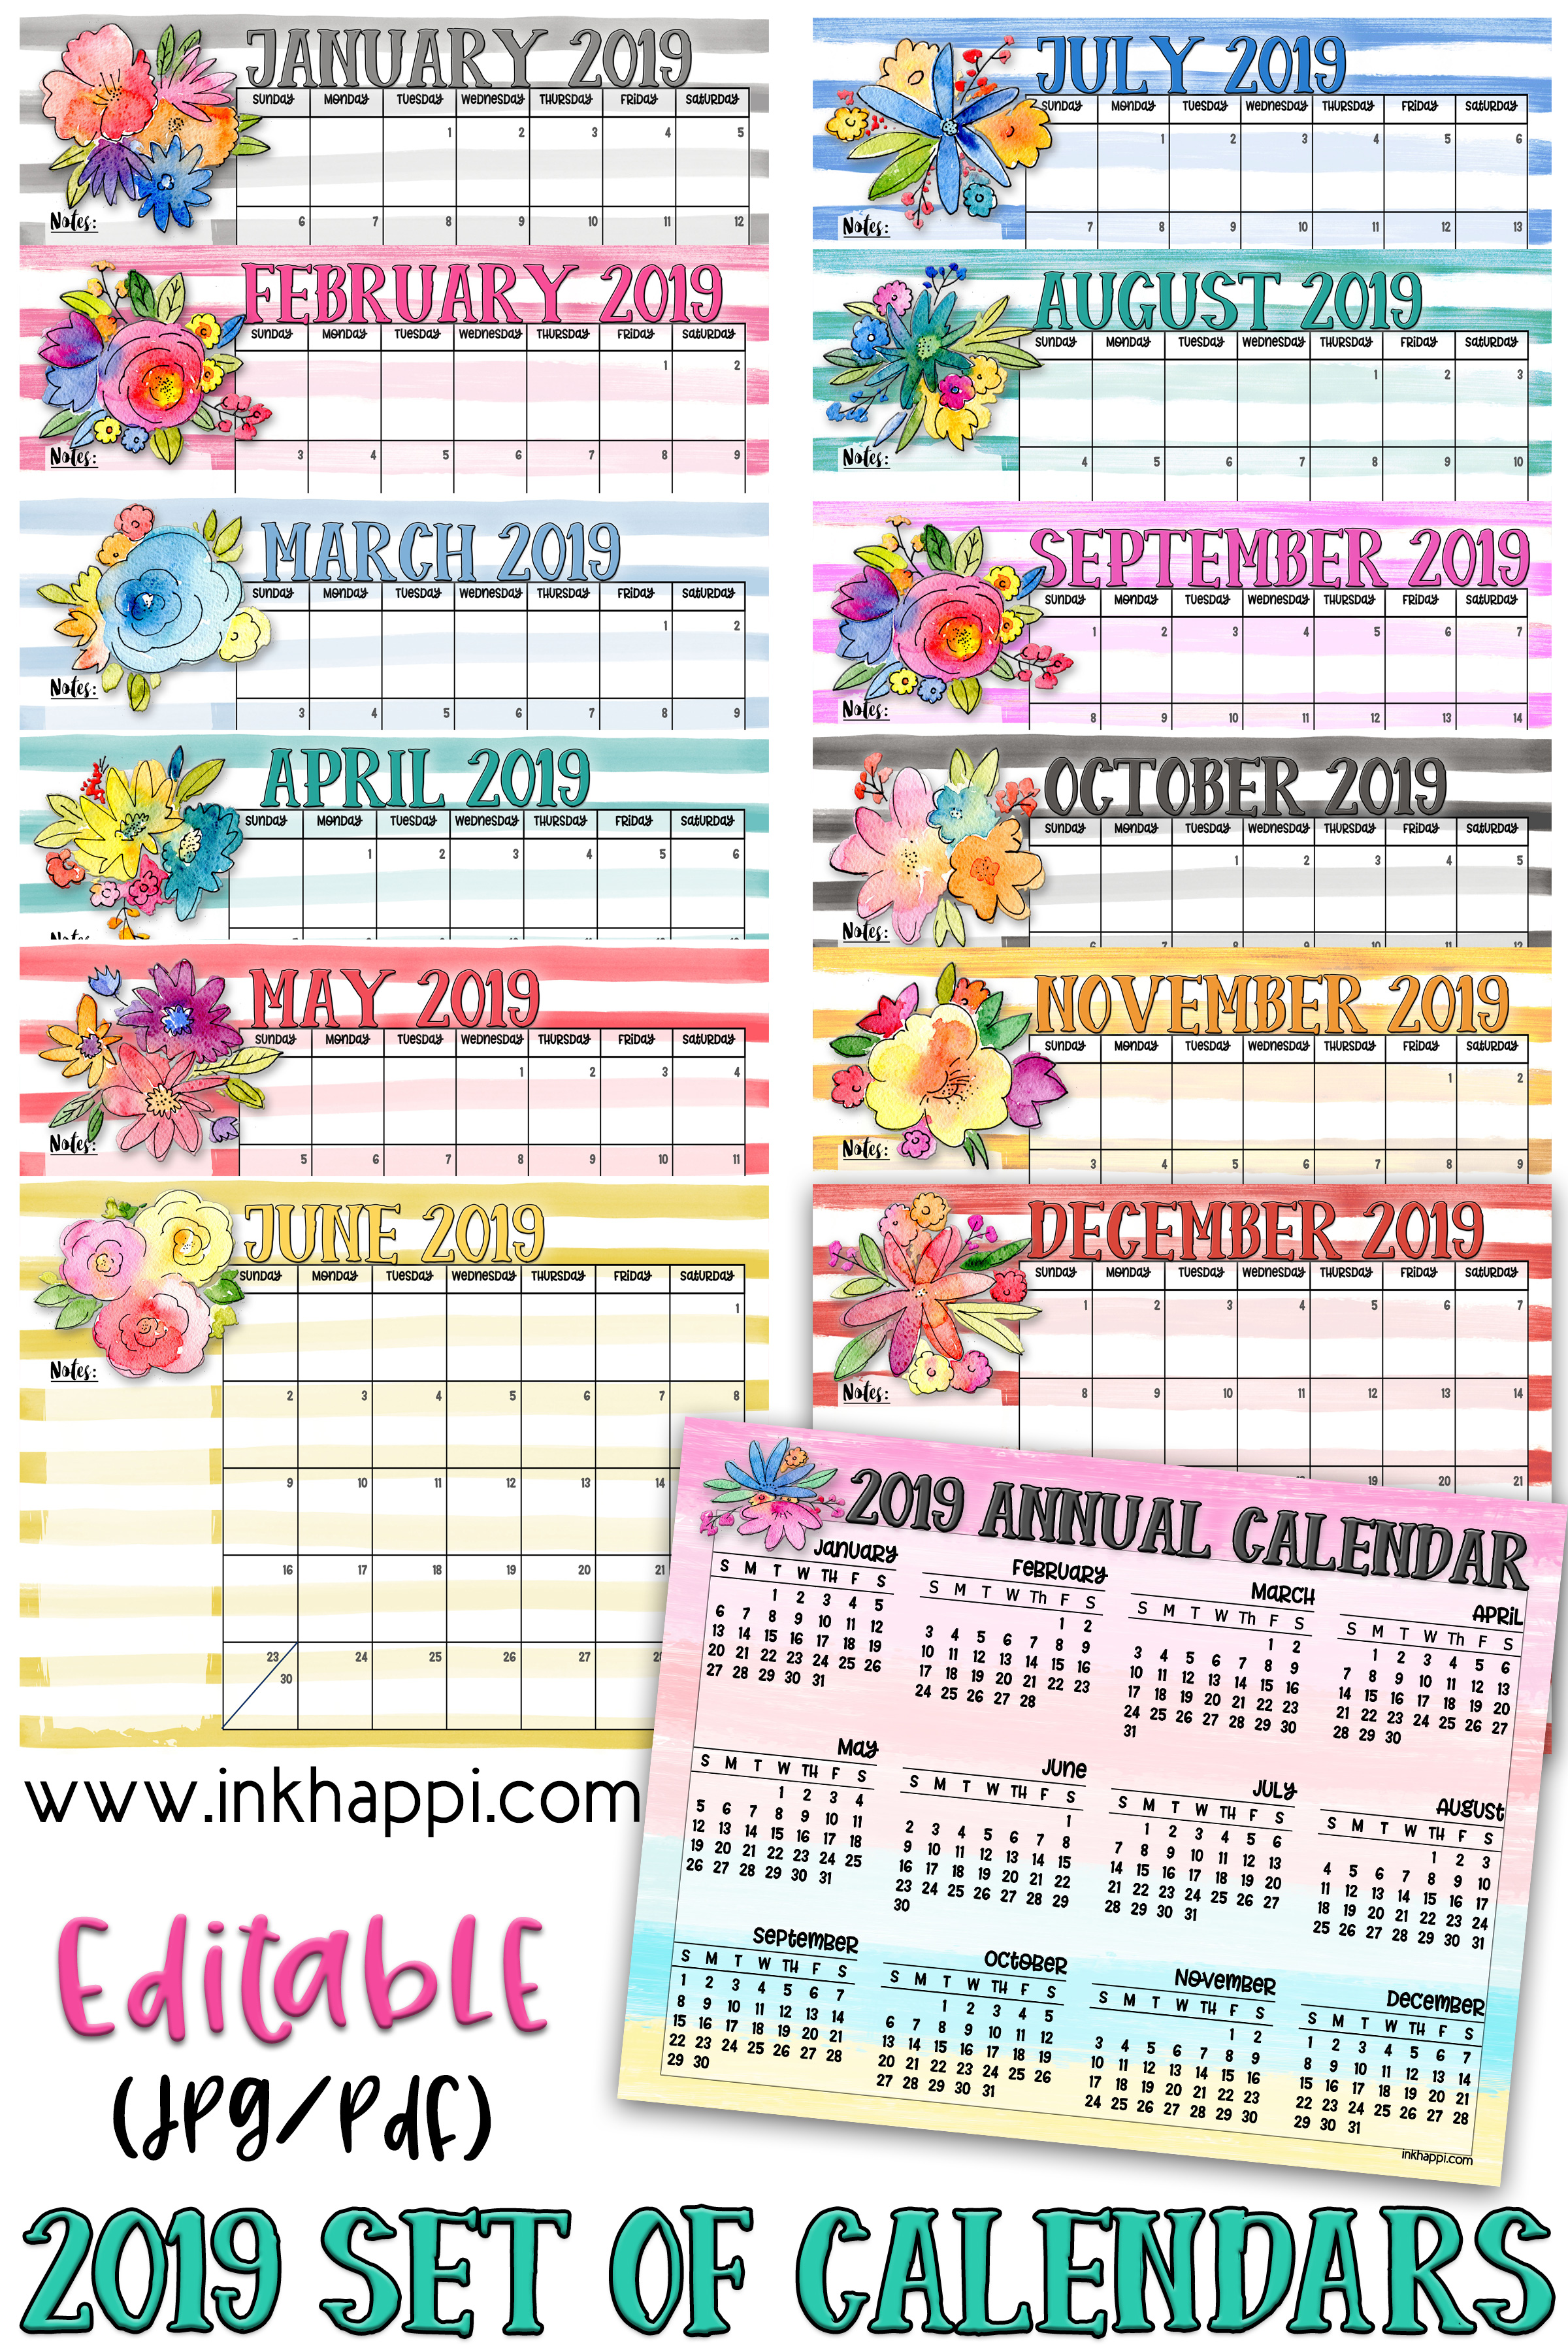 2019 annual and monthly calendars from inkhappi.